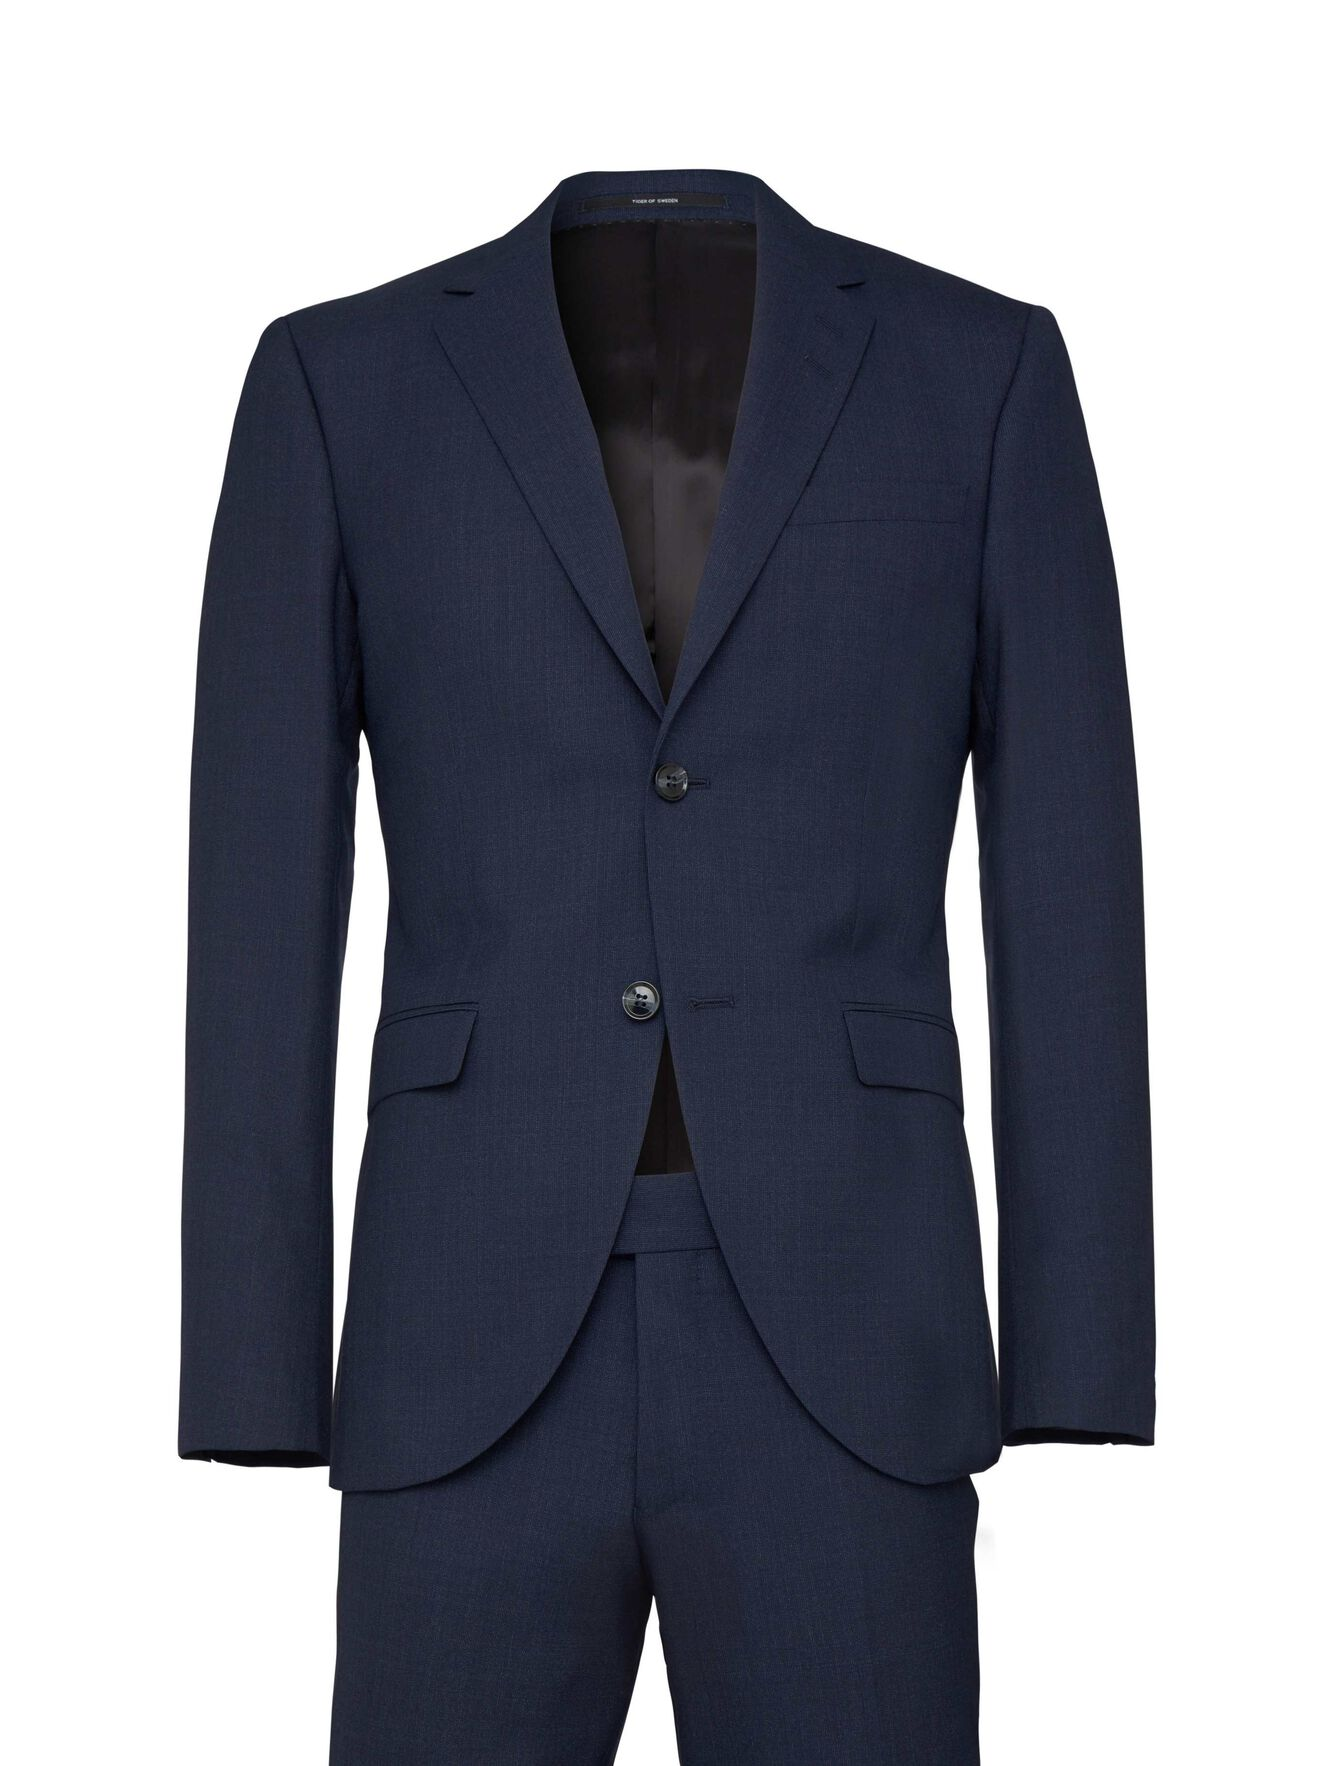 Lamonte Suit in Evening Blue from Tiger of Sweden